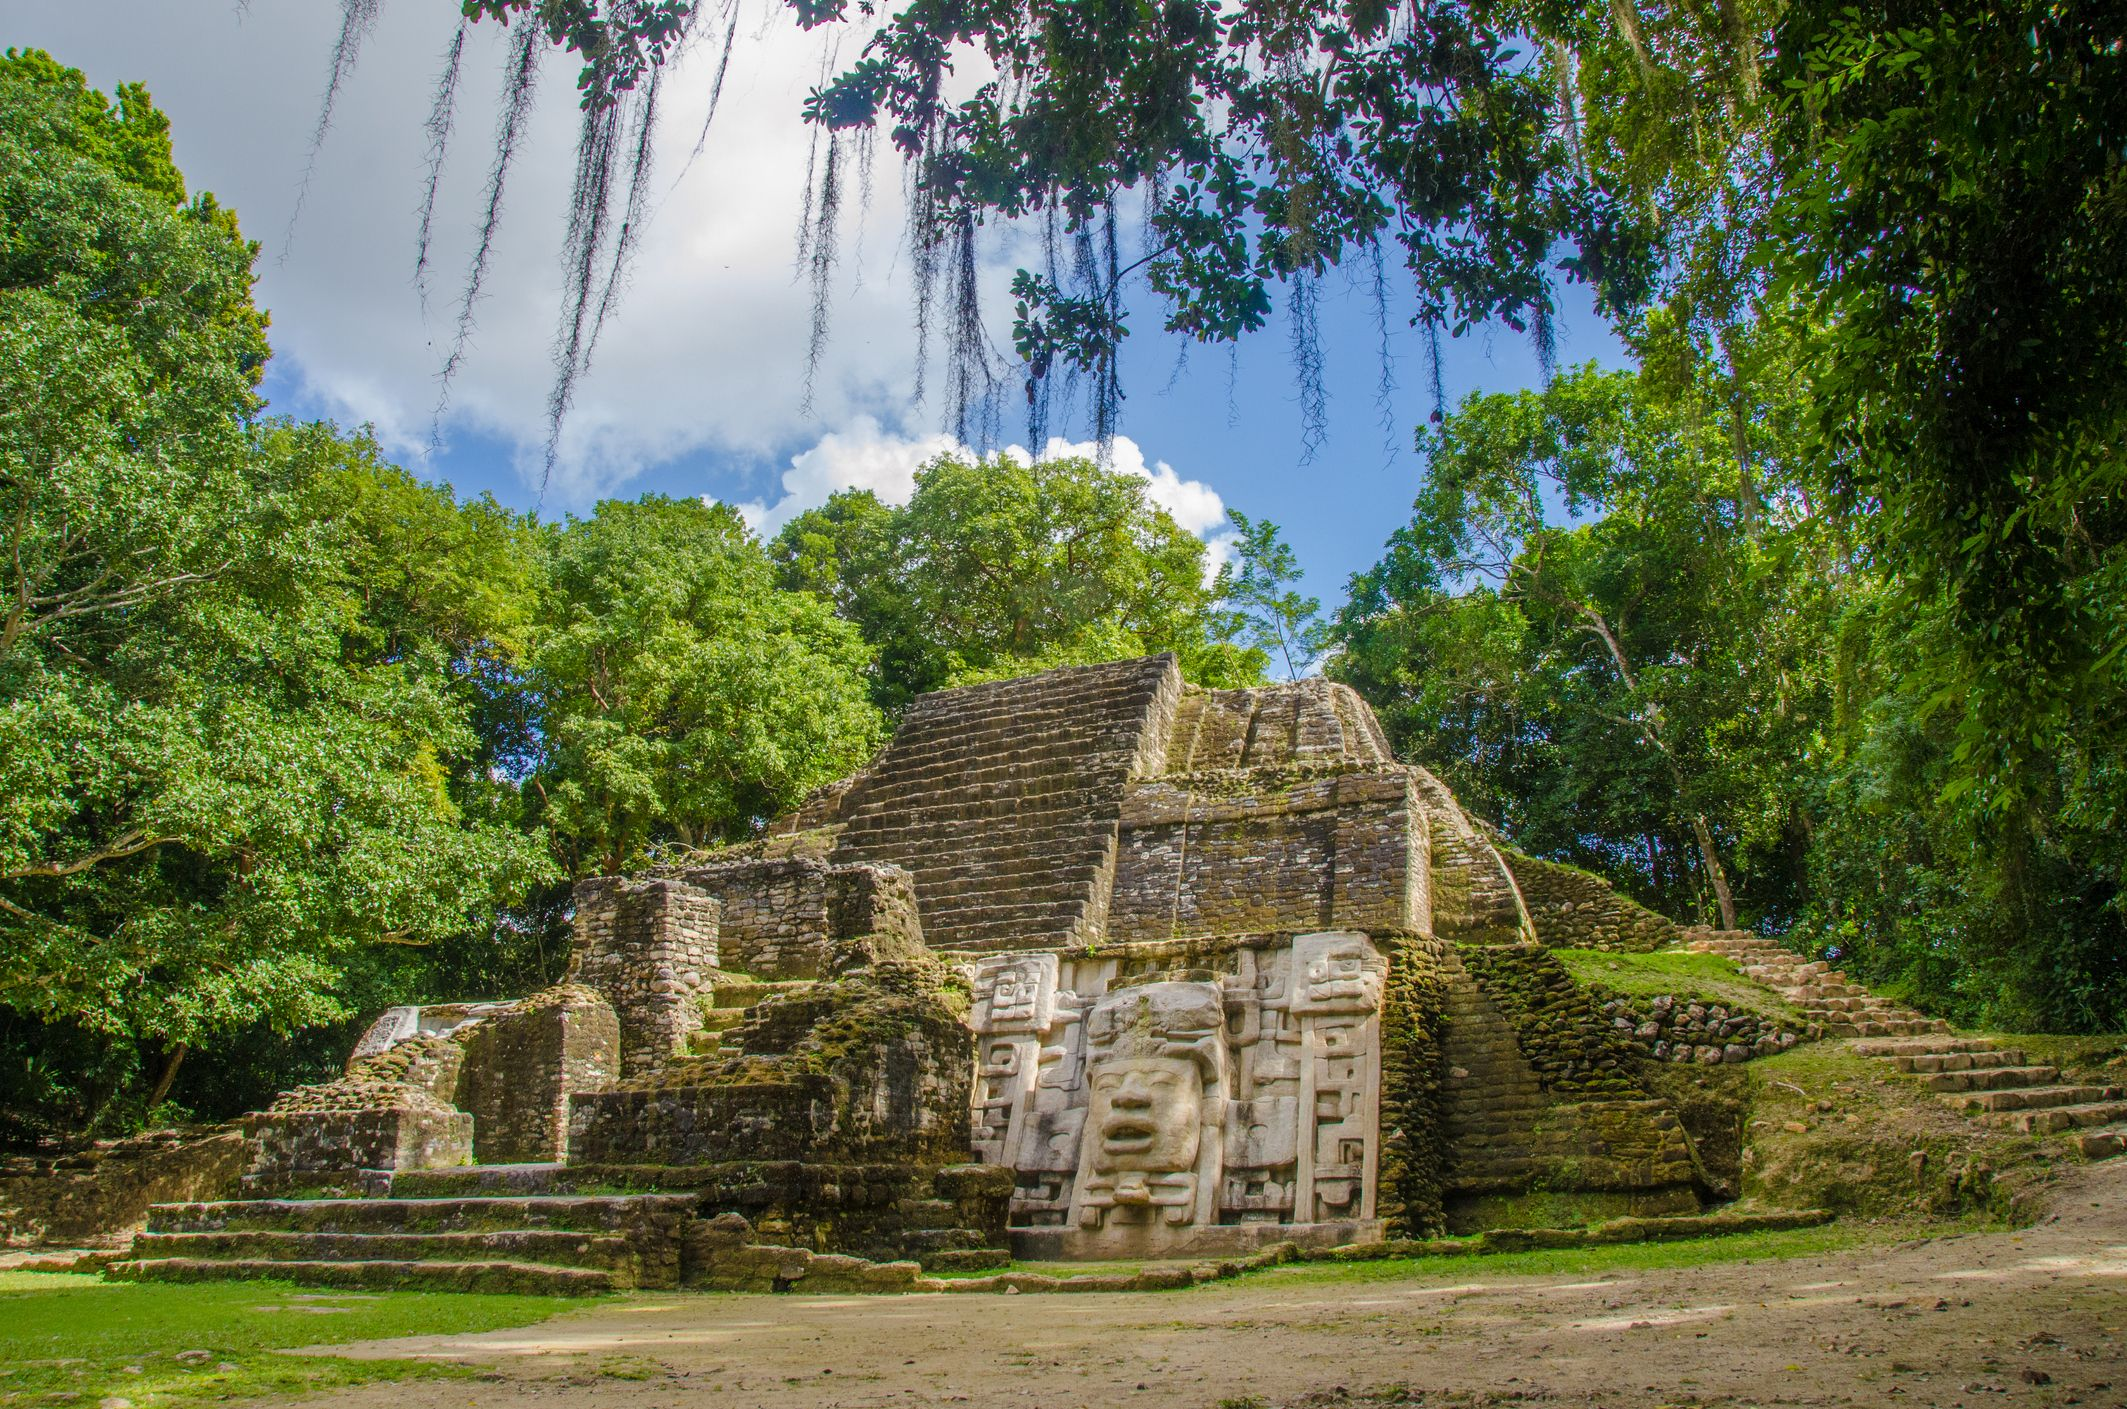 The Lamanai Mayan ruins